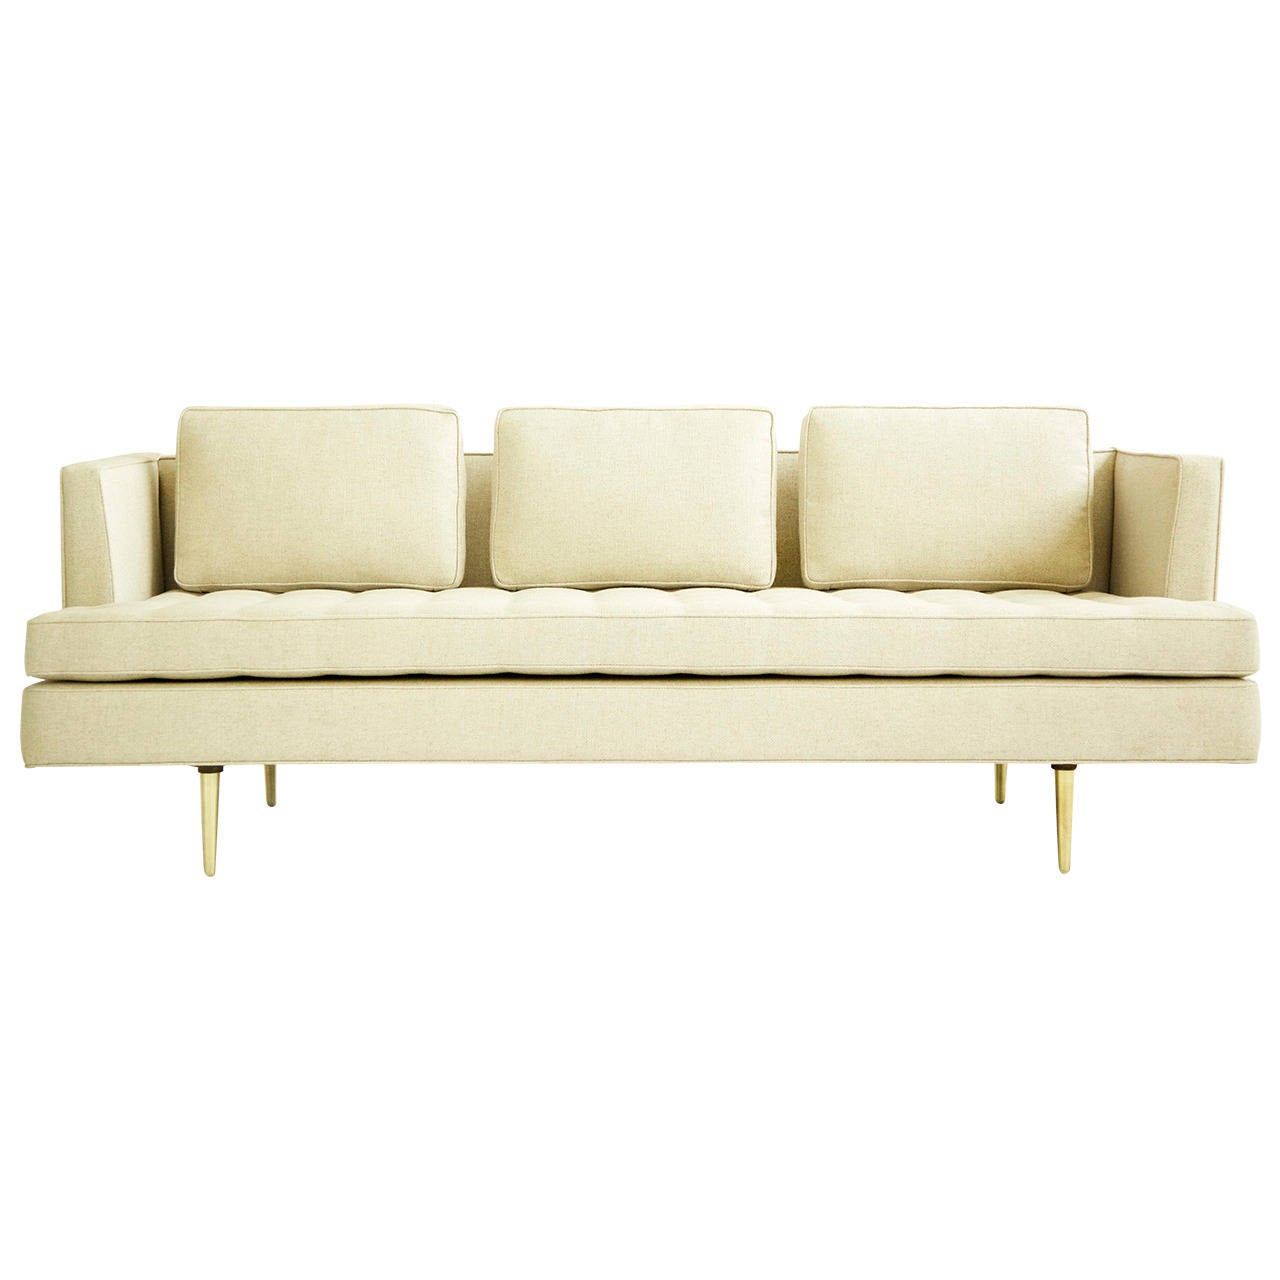 Charmant Edward Wormley Sofa